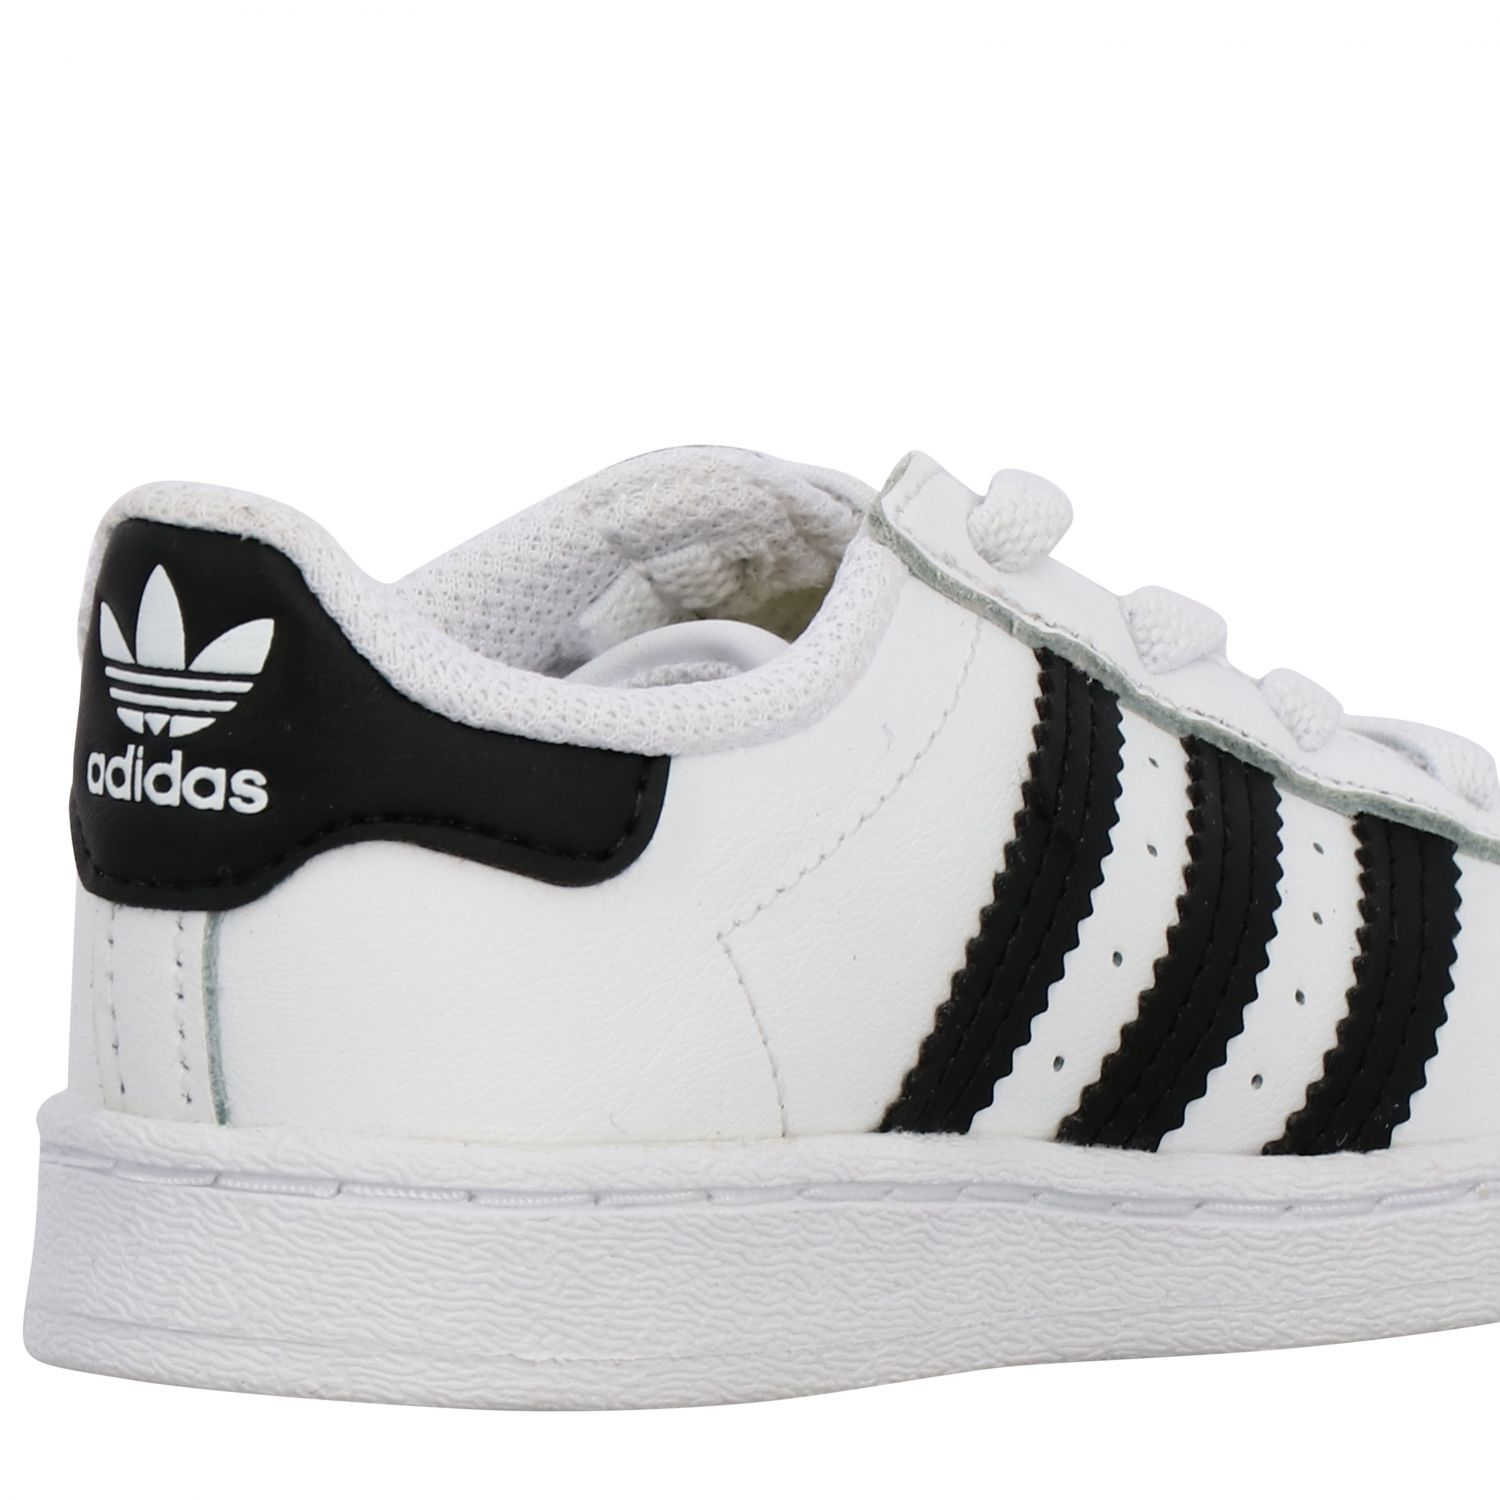 Shoes Adidas Originals: Superstar Adidas Originals leather sneakers white 5